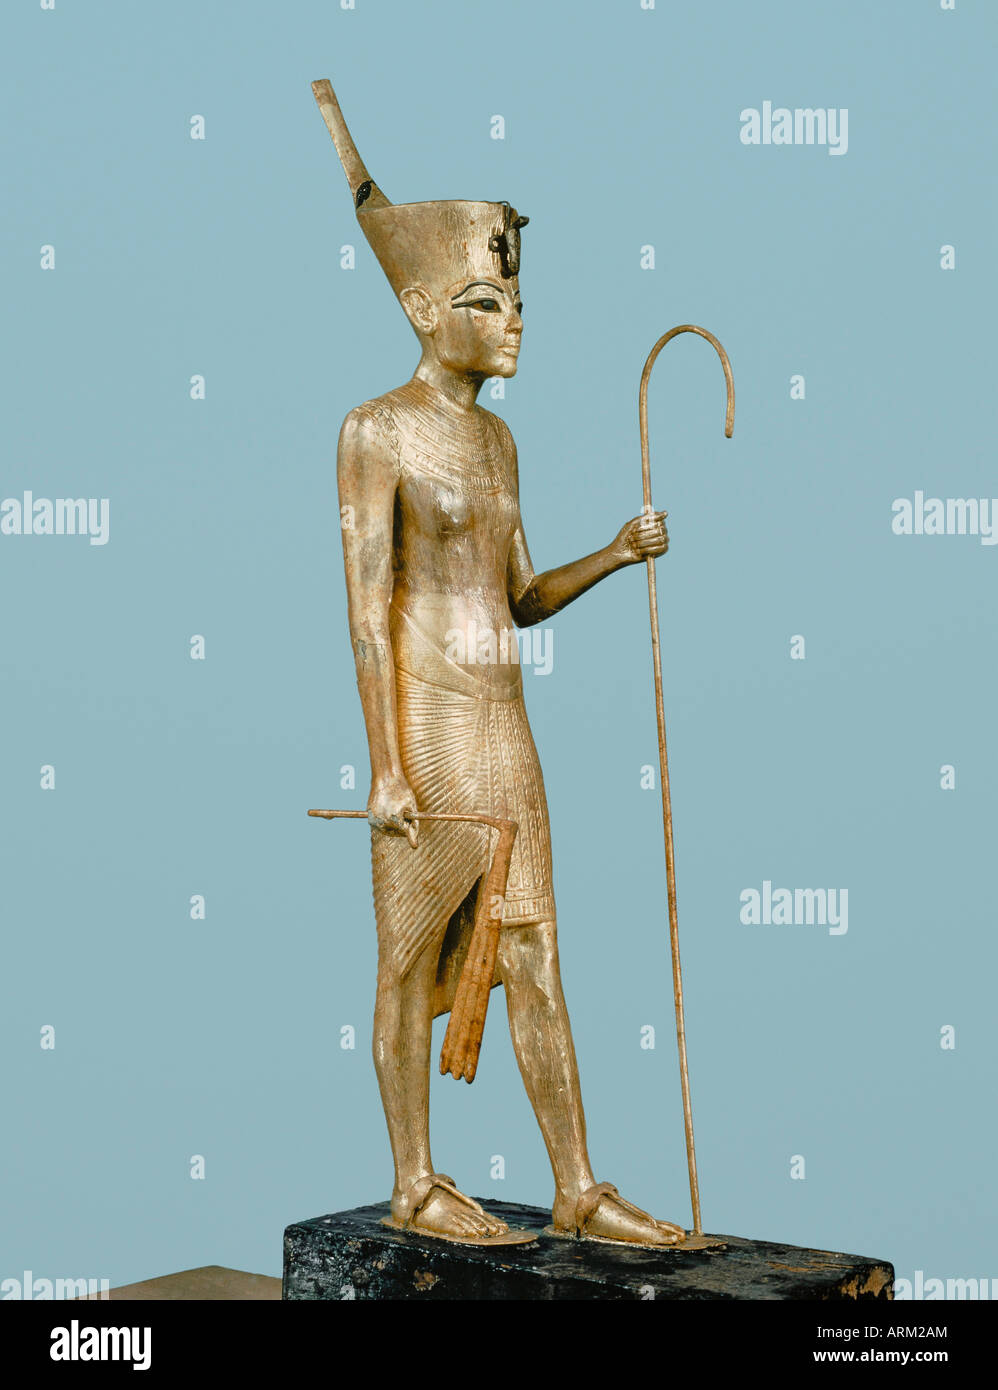 Gilt wood statuette of the king, from the tomb of the pharaoh Tutankhamun - Stock Image